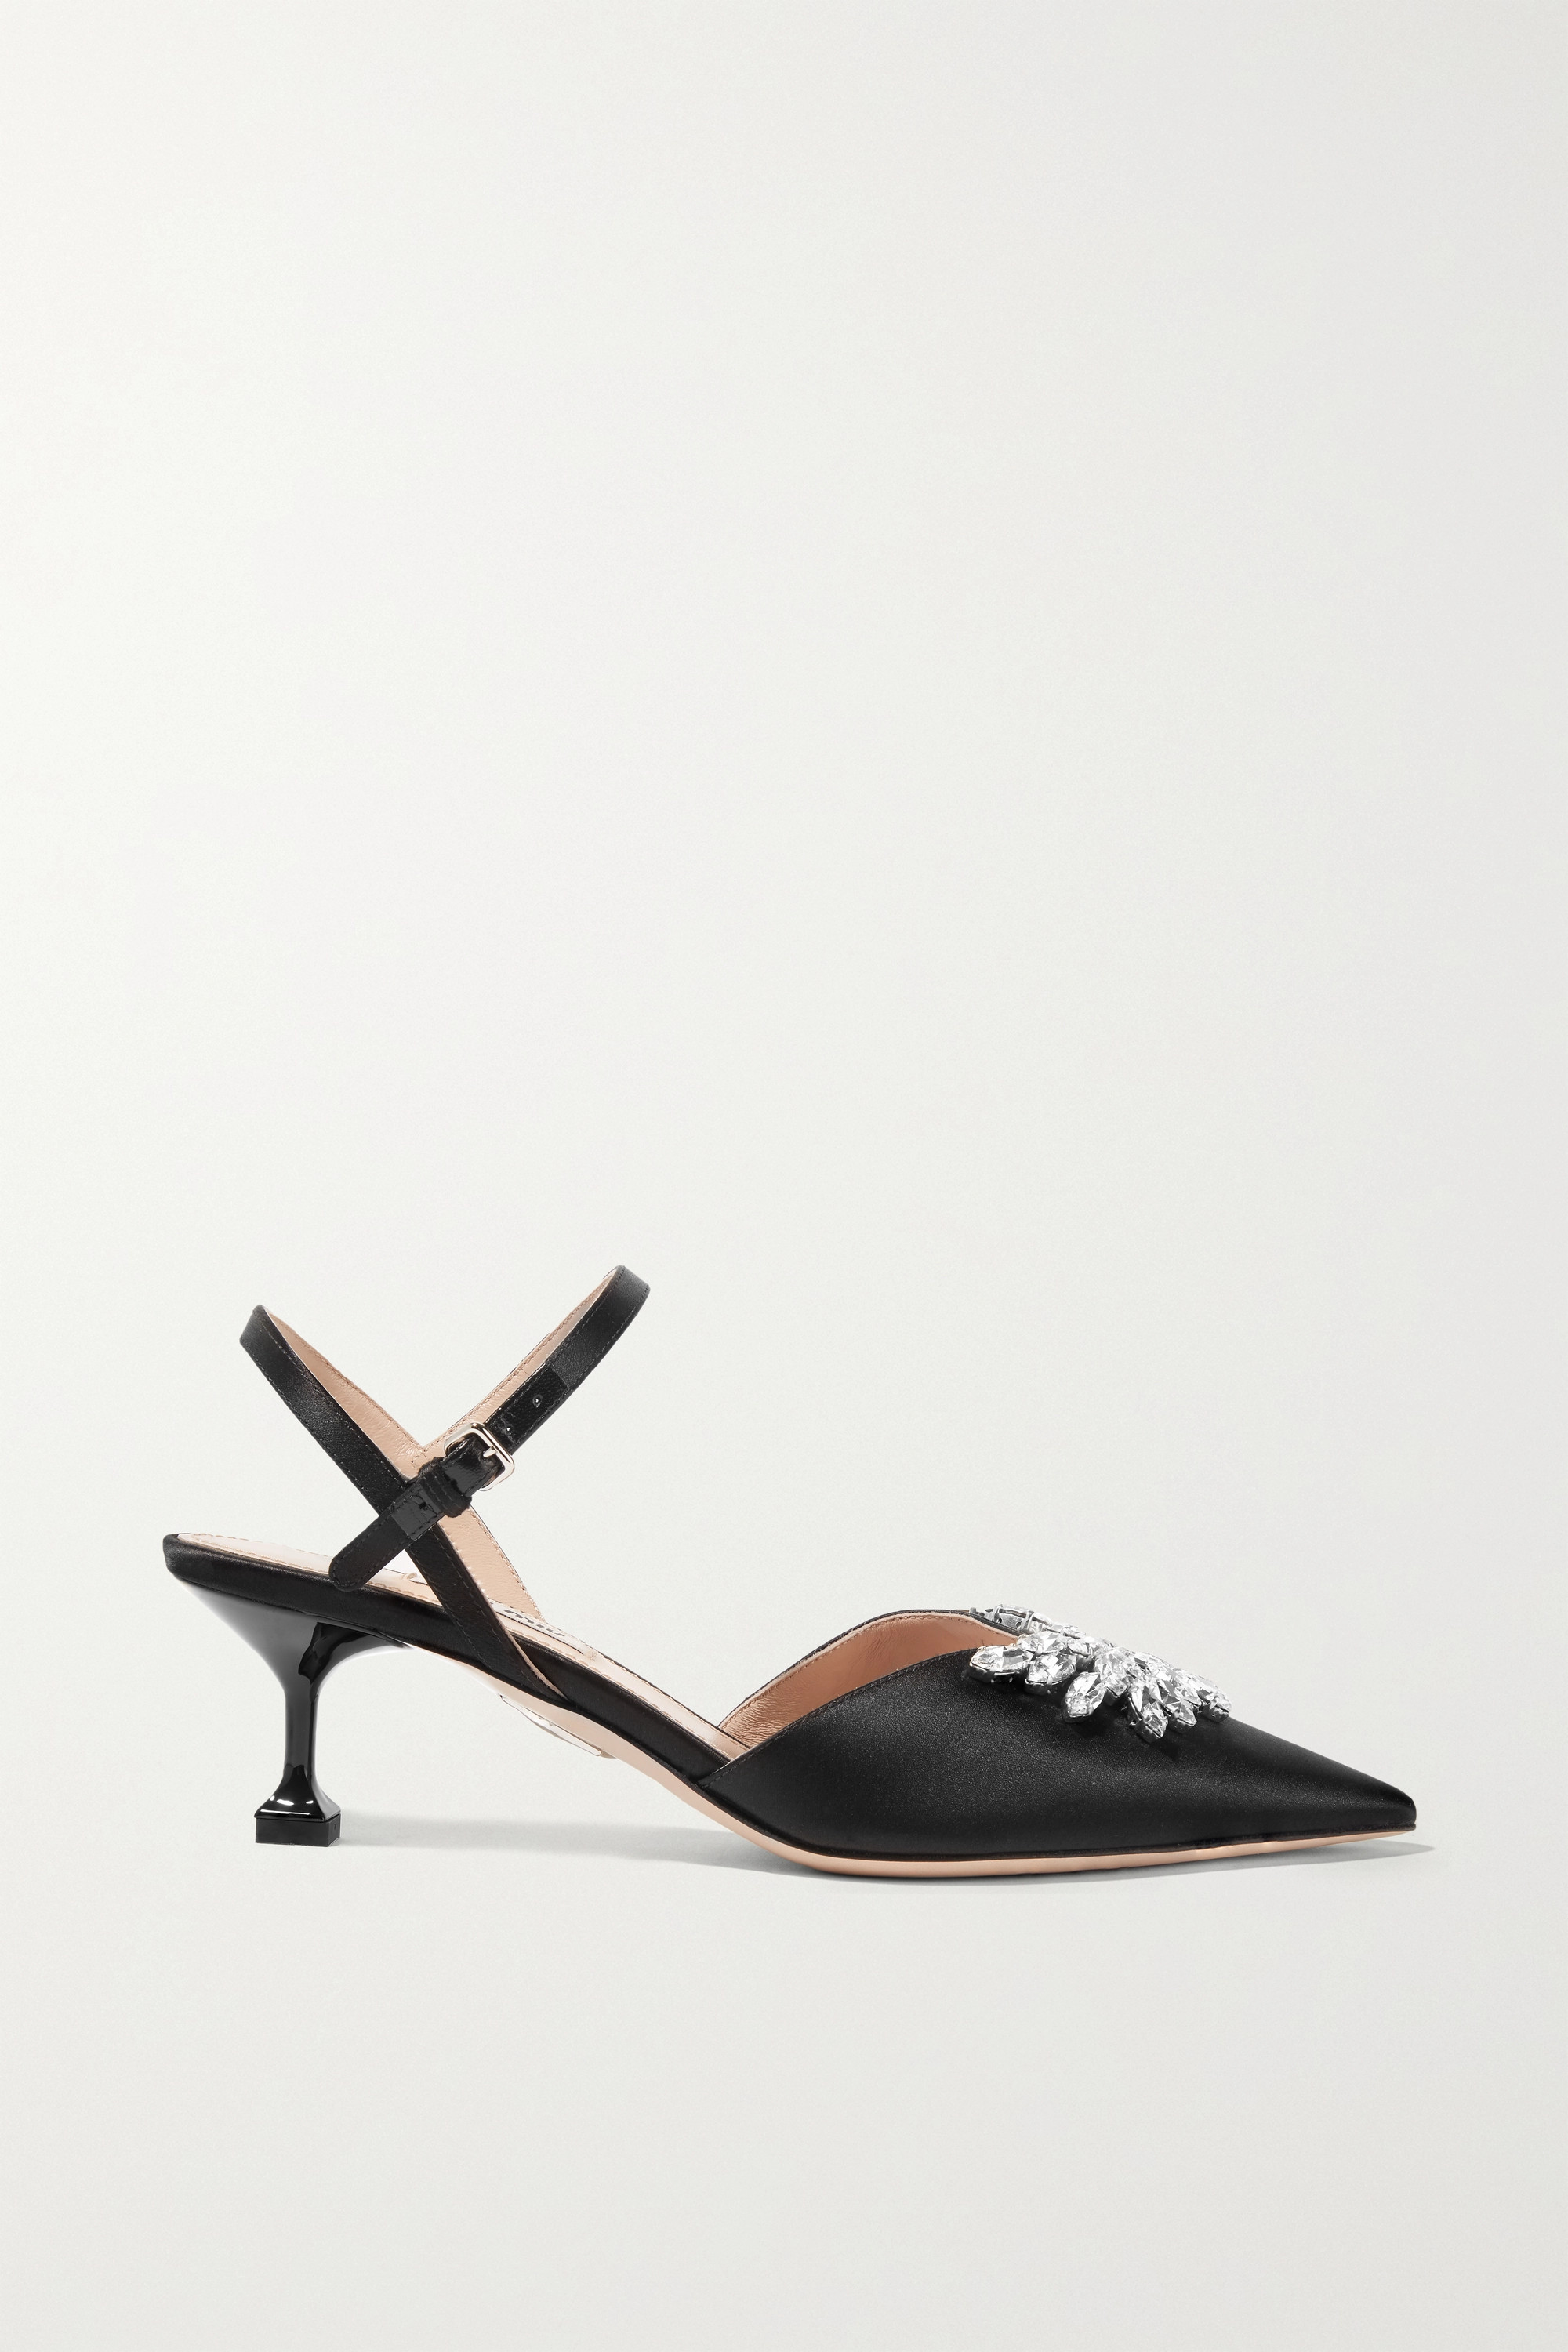 Miu Miu Crystal-embellished satin slingback pumps